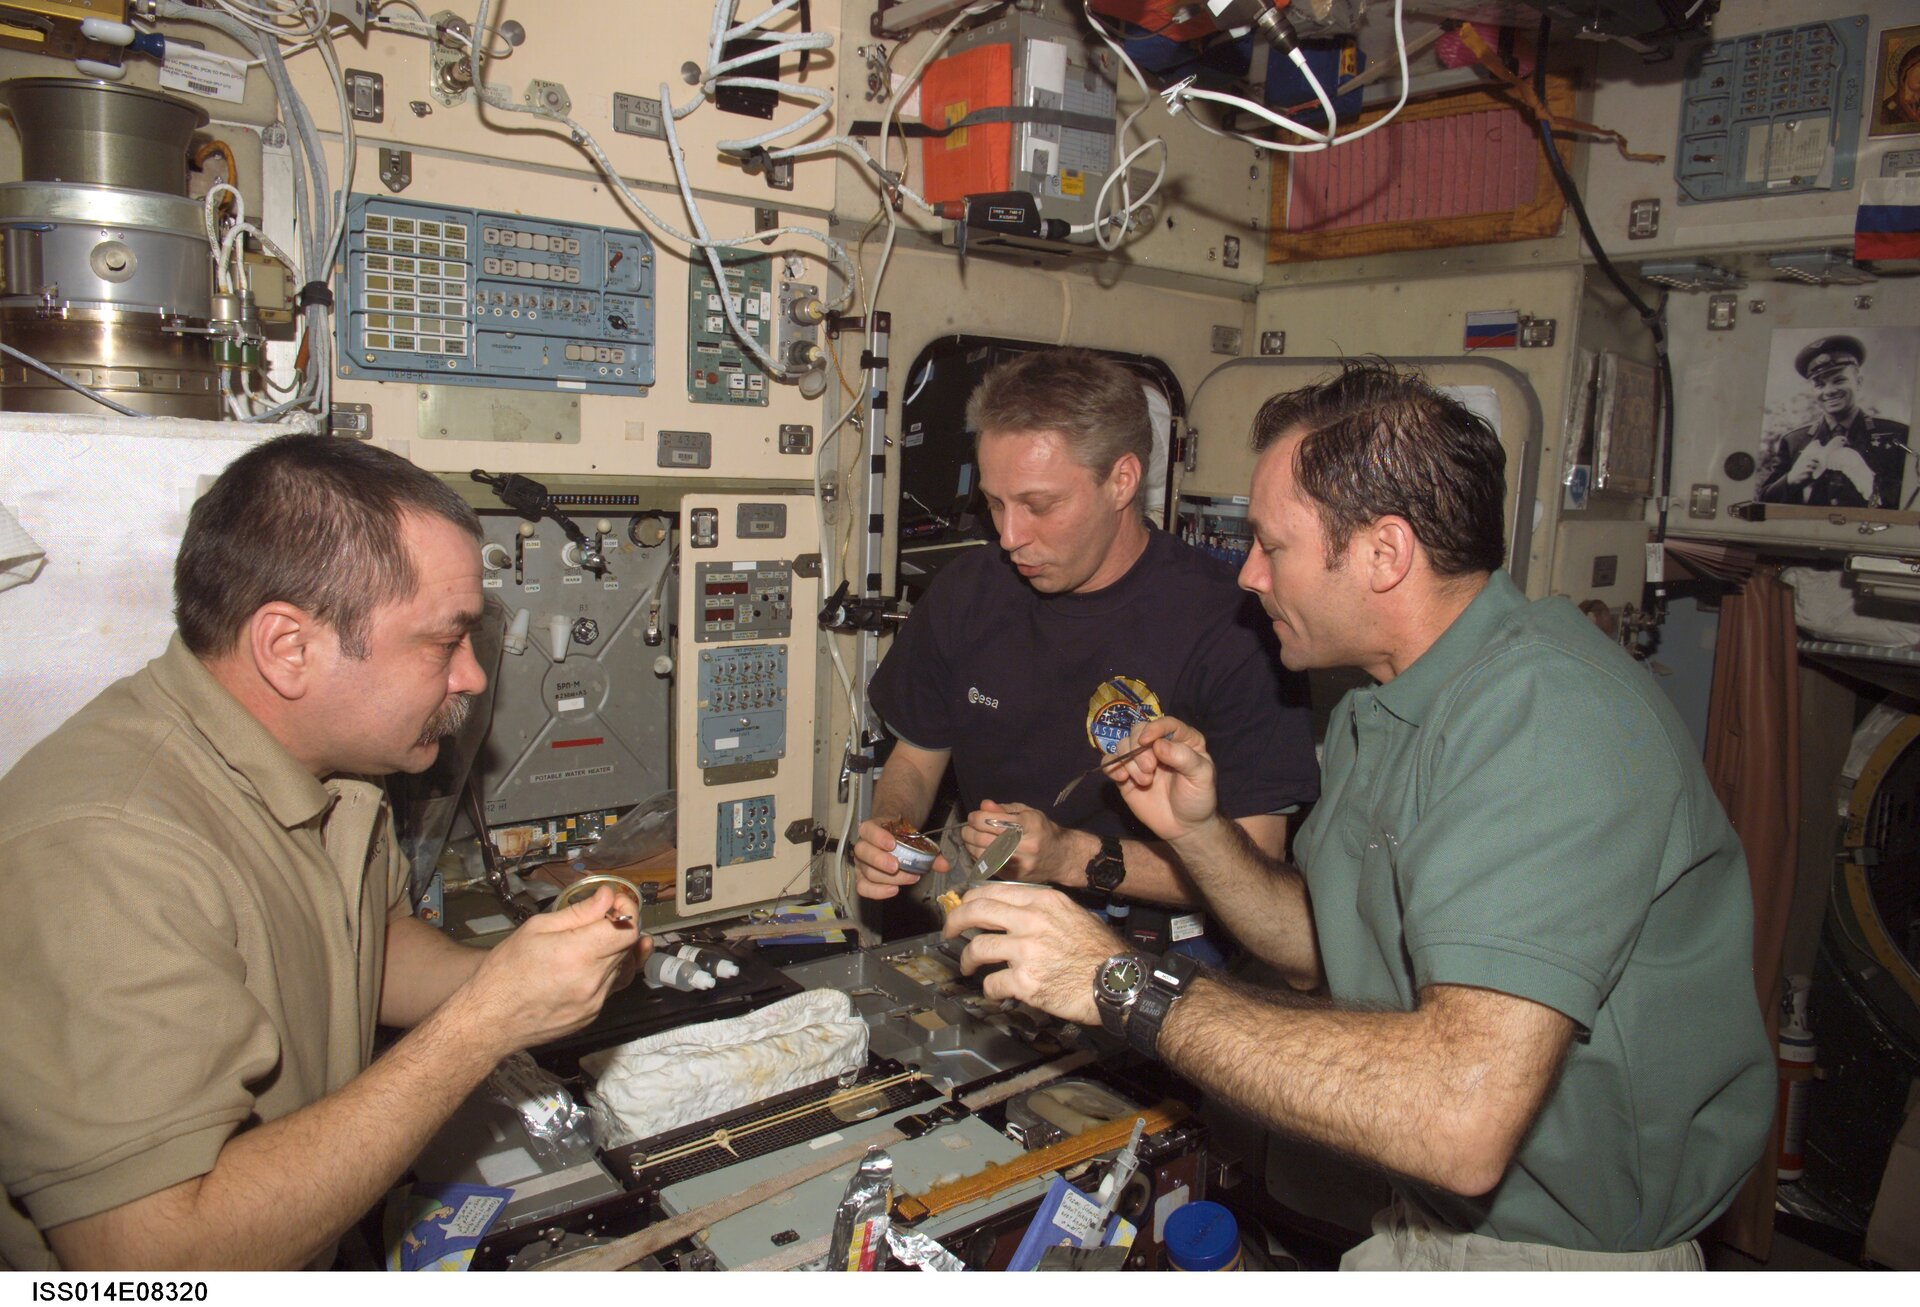 Meal at the galley in the Zvezda Service Module